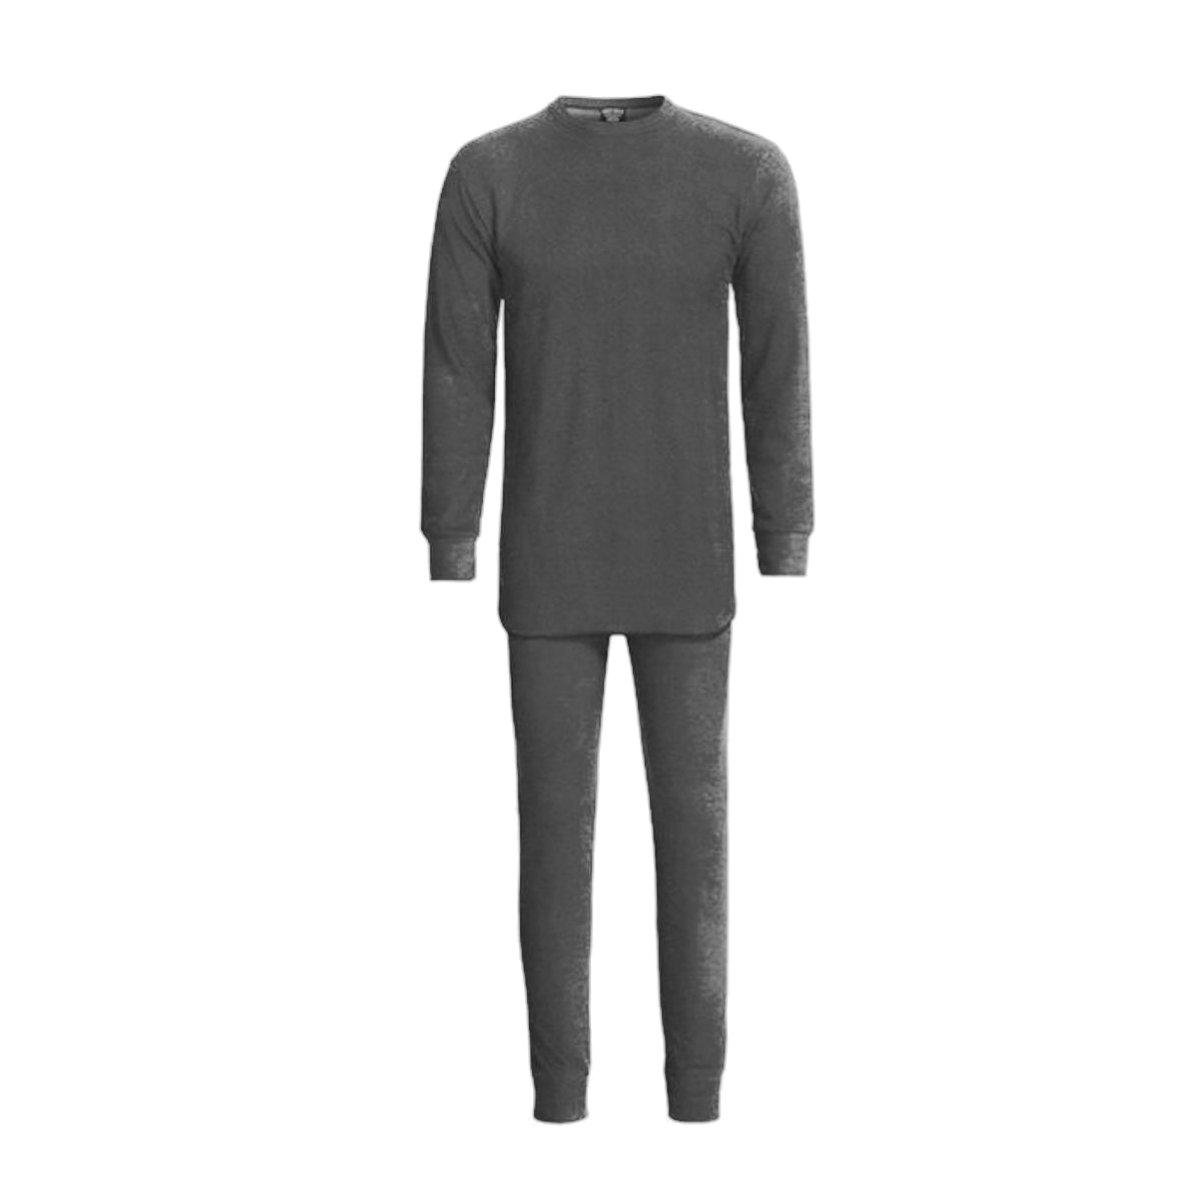 Grit Iron Mens 2 Piece Thermal Set, Gray, Large by Grit Iron